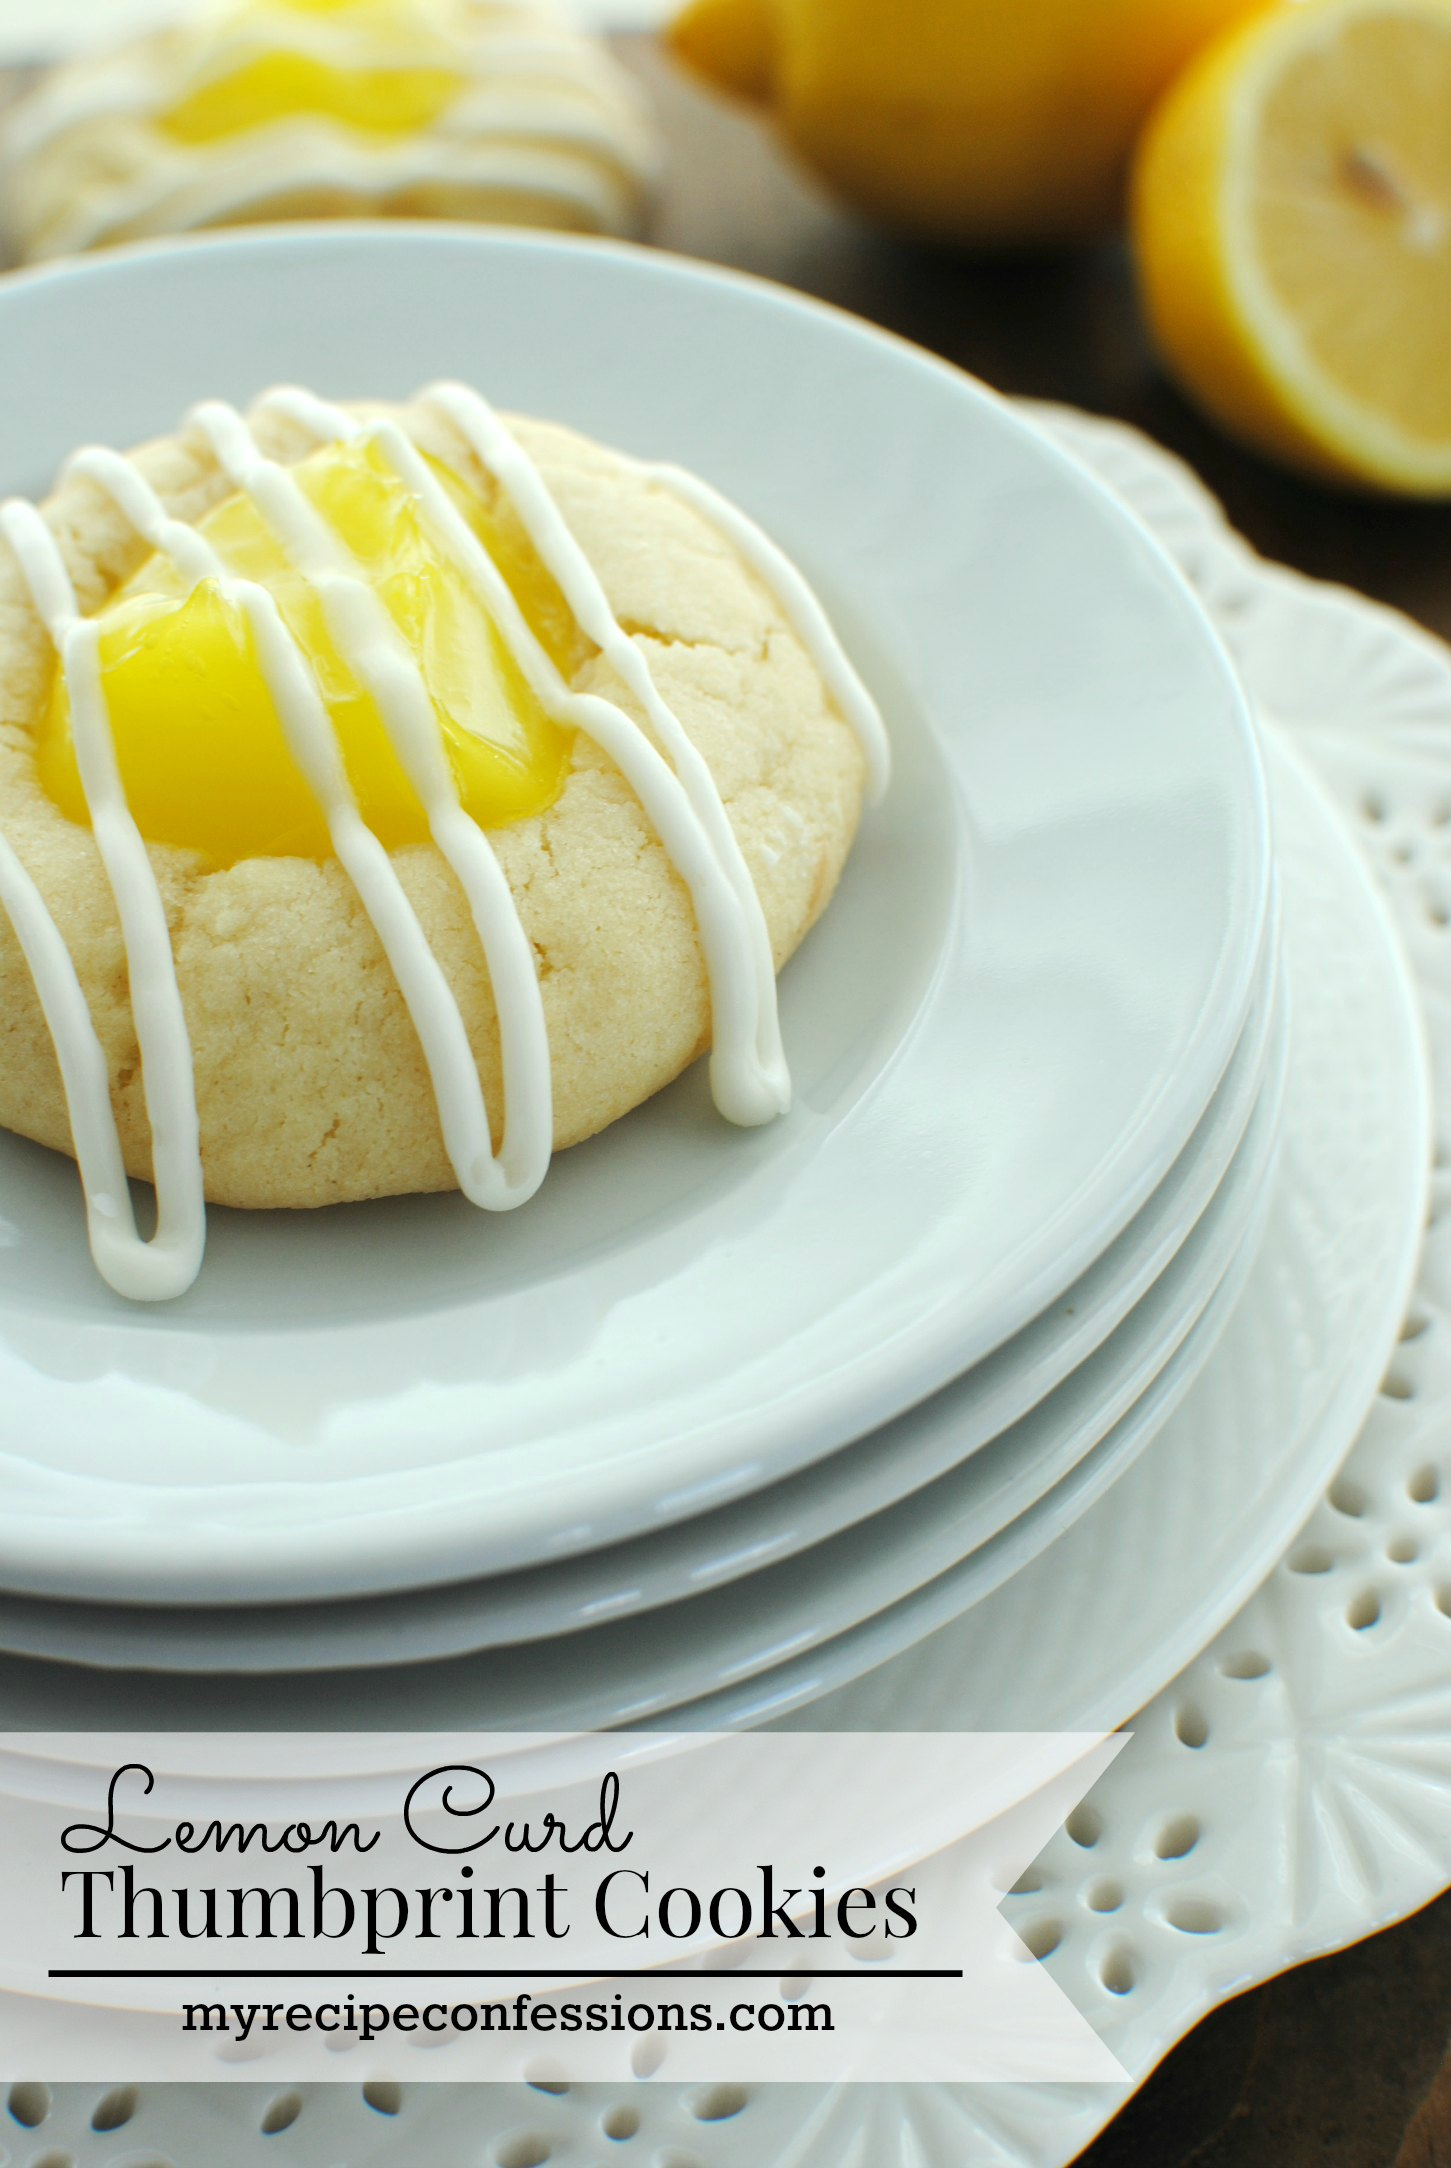 how to make my lemon curd thicker